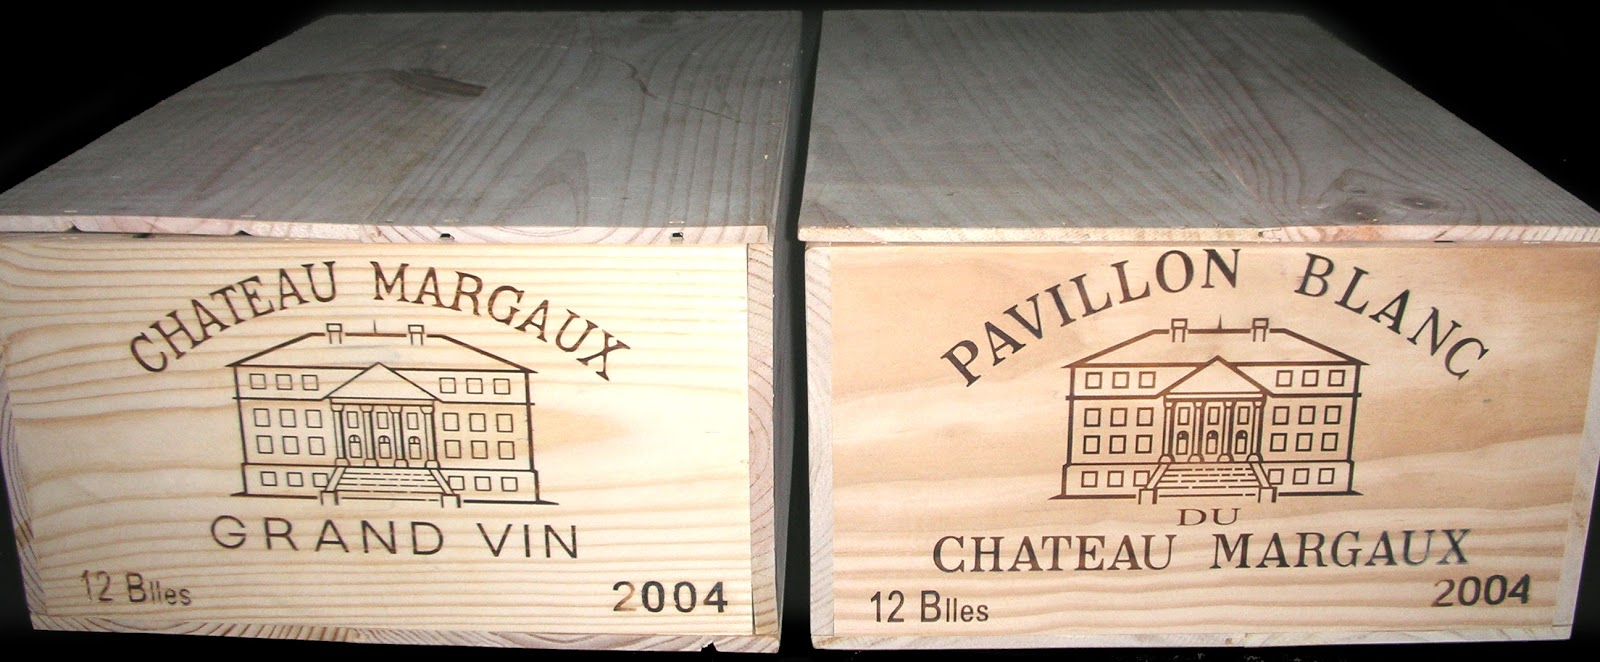 Wood Wine Crate & Box Profiles: Chateau Margaux